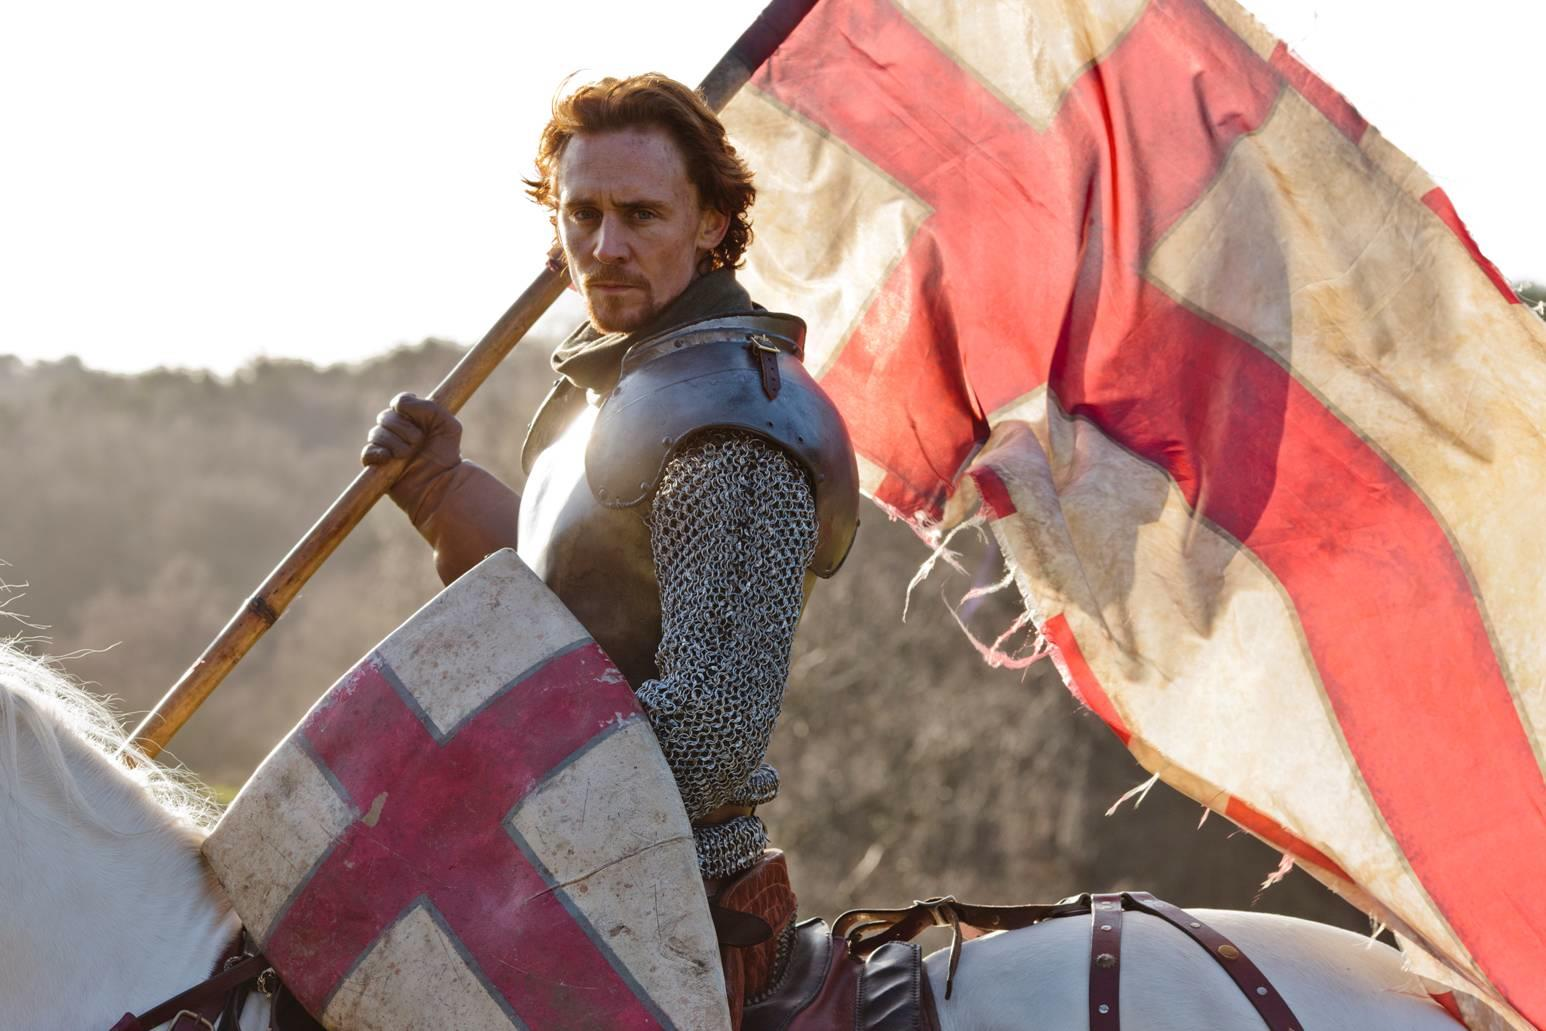 king henry iv politics and action The henry iv part 1 play is set in early fifteenth-century england during the reign of king henry iv the scenes move rapidly from one location to another the action begins at the royal court.